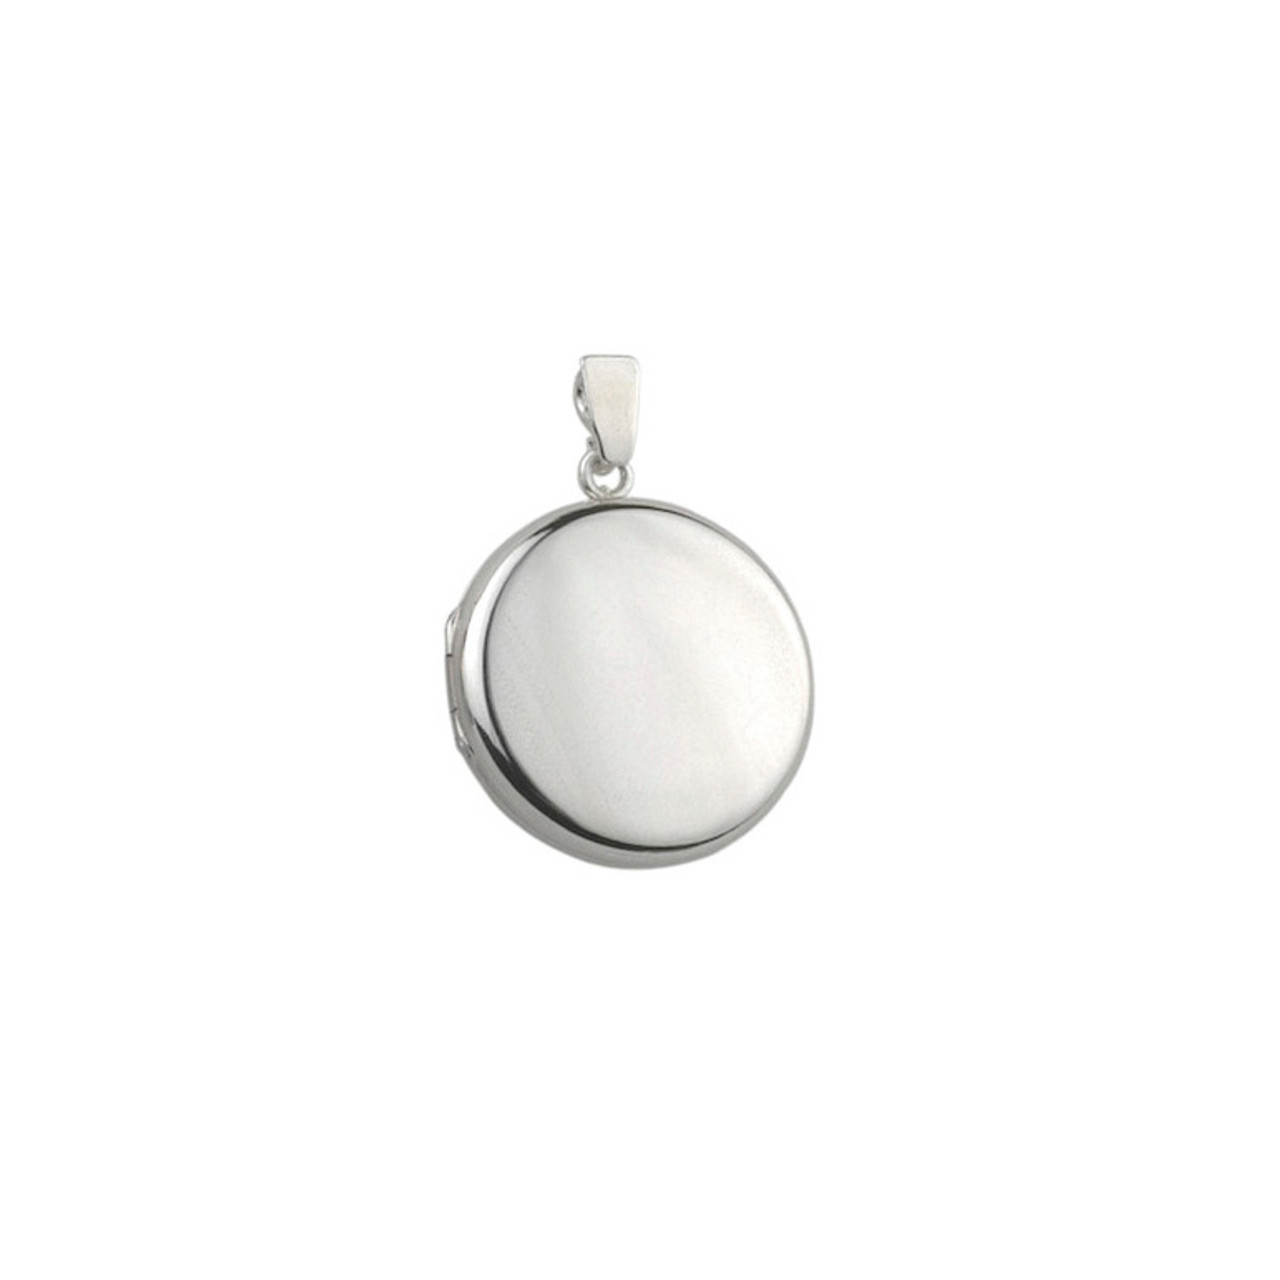 Silver 20mm round Locket & Chain